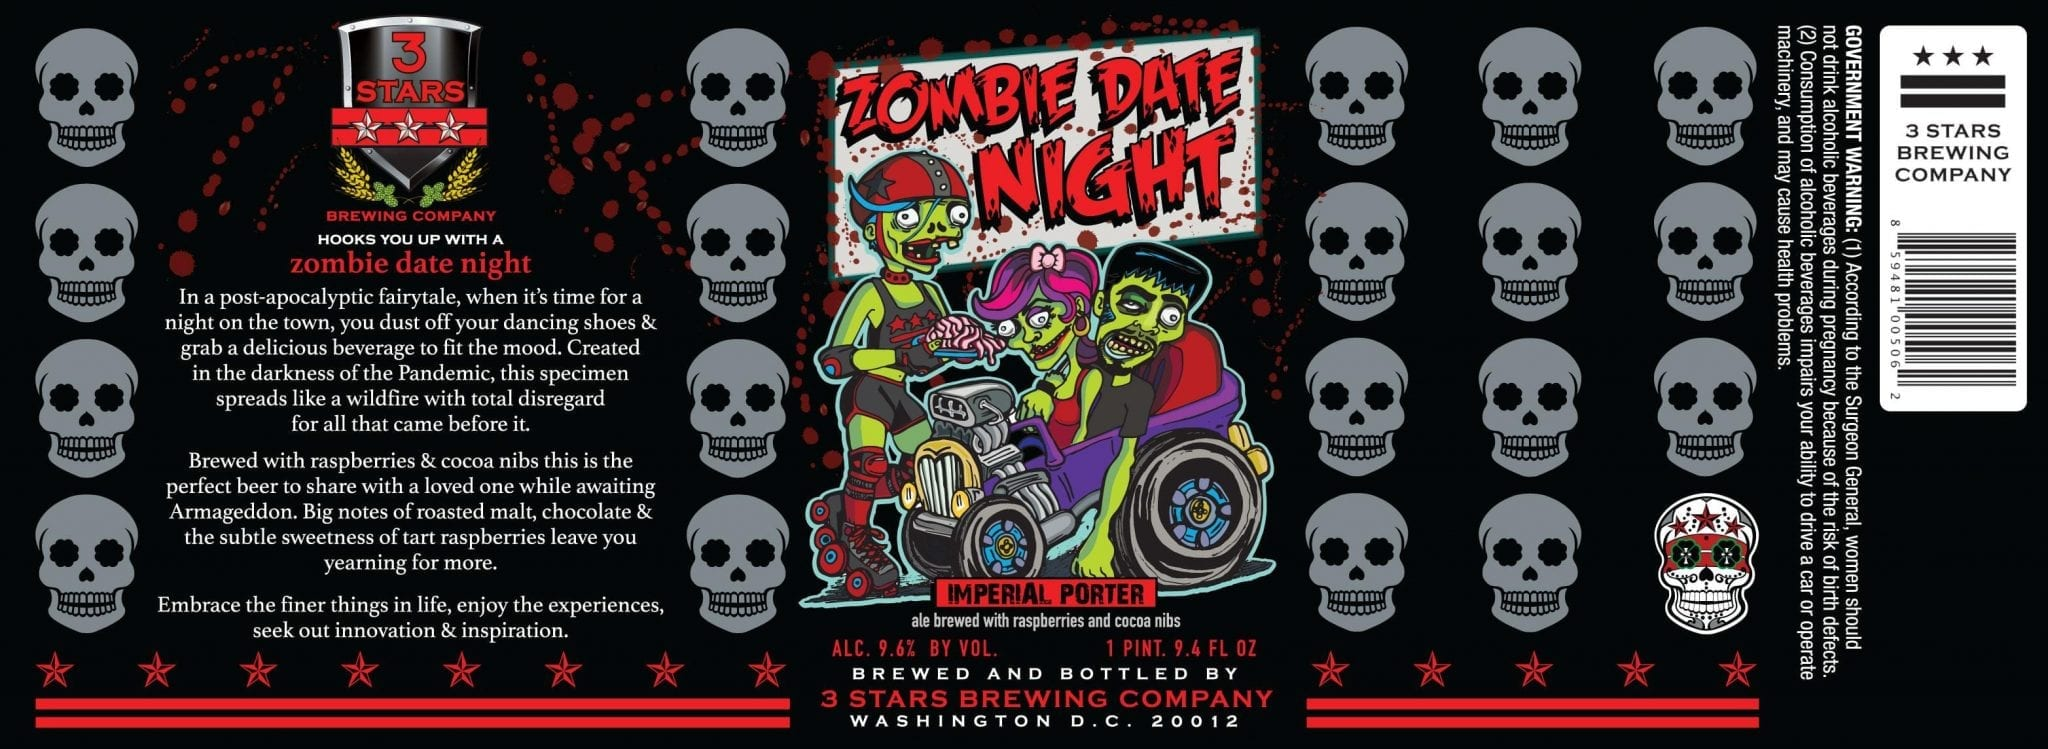 3 Stars Brewing Company Zombie Date Night